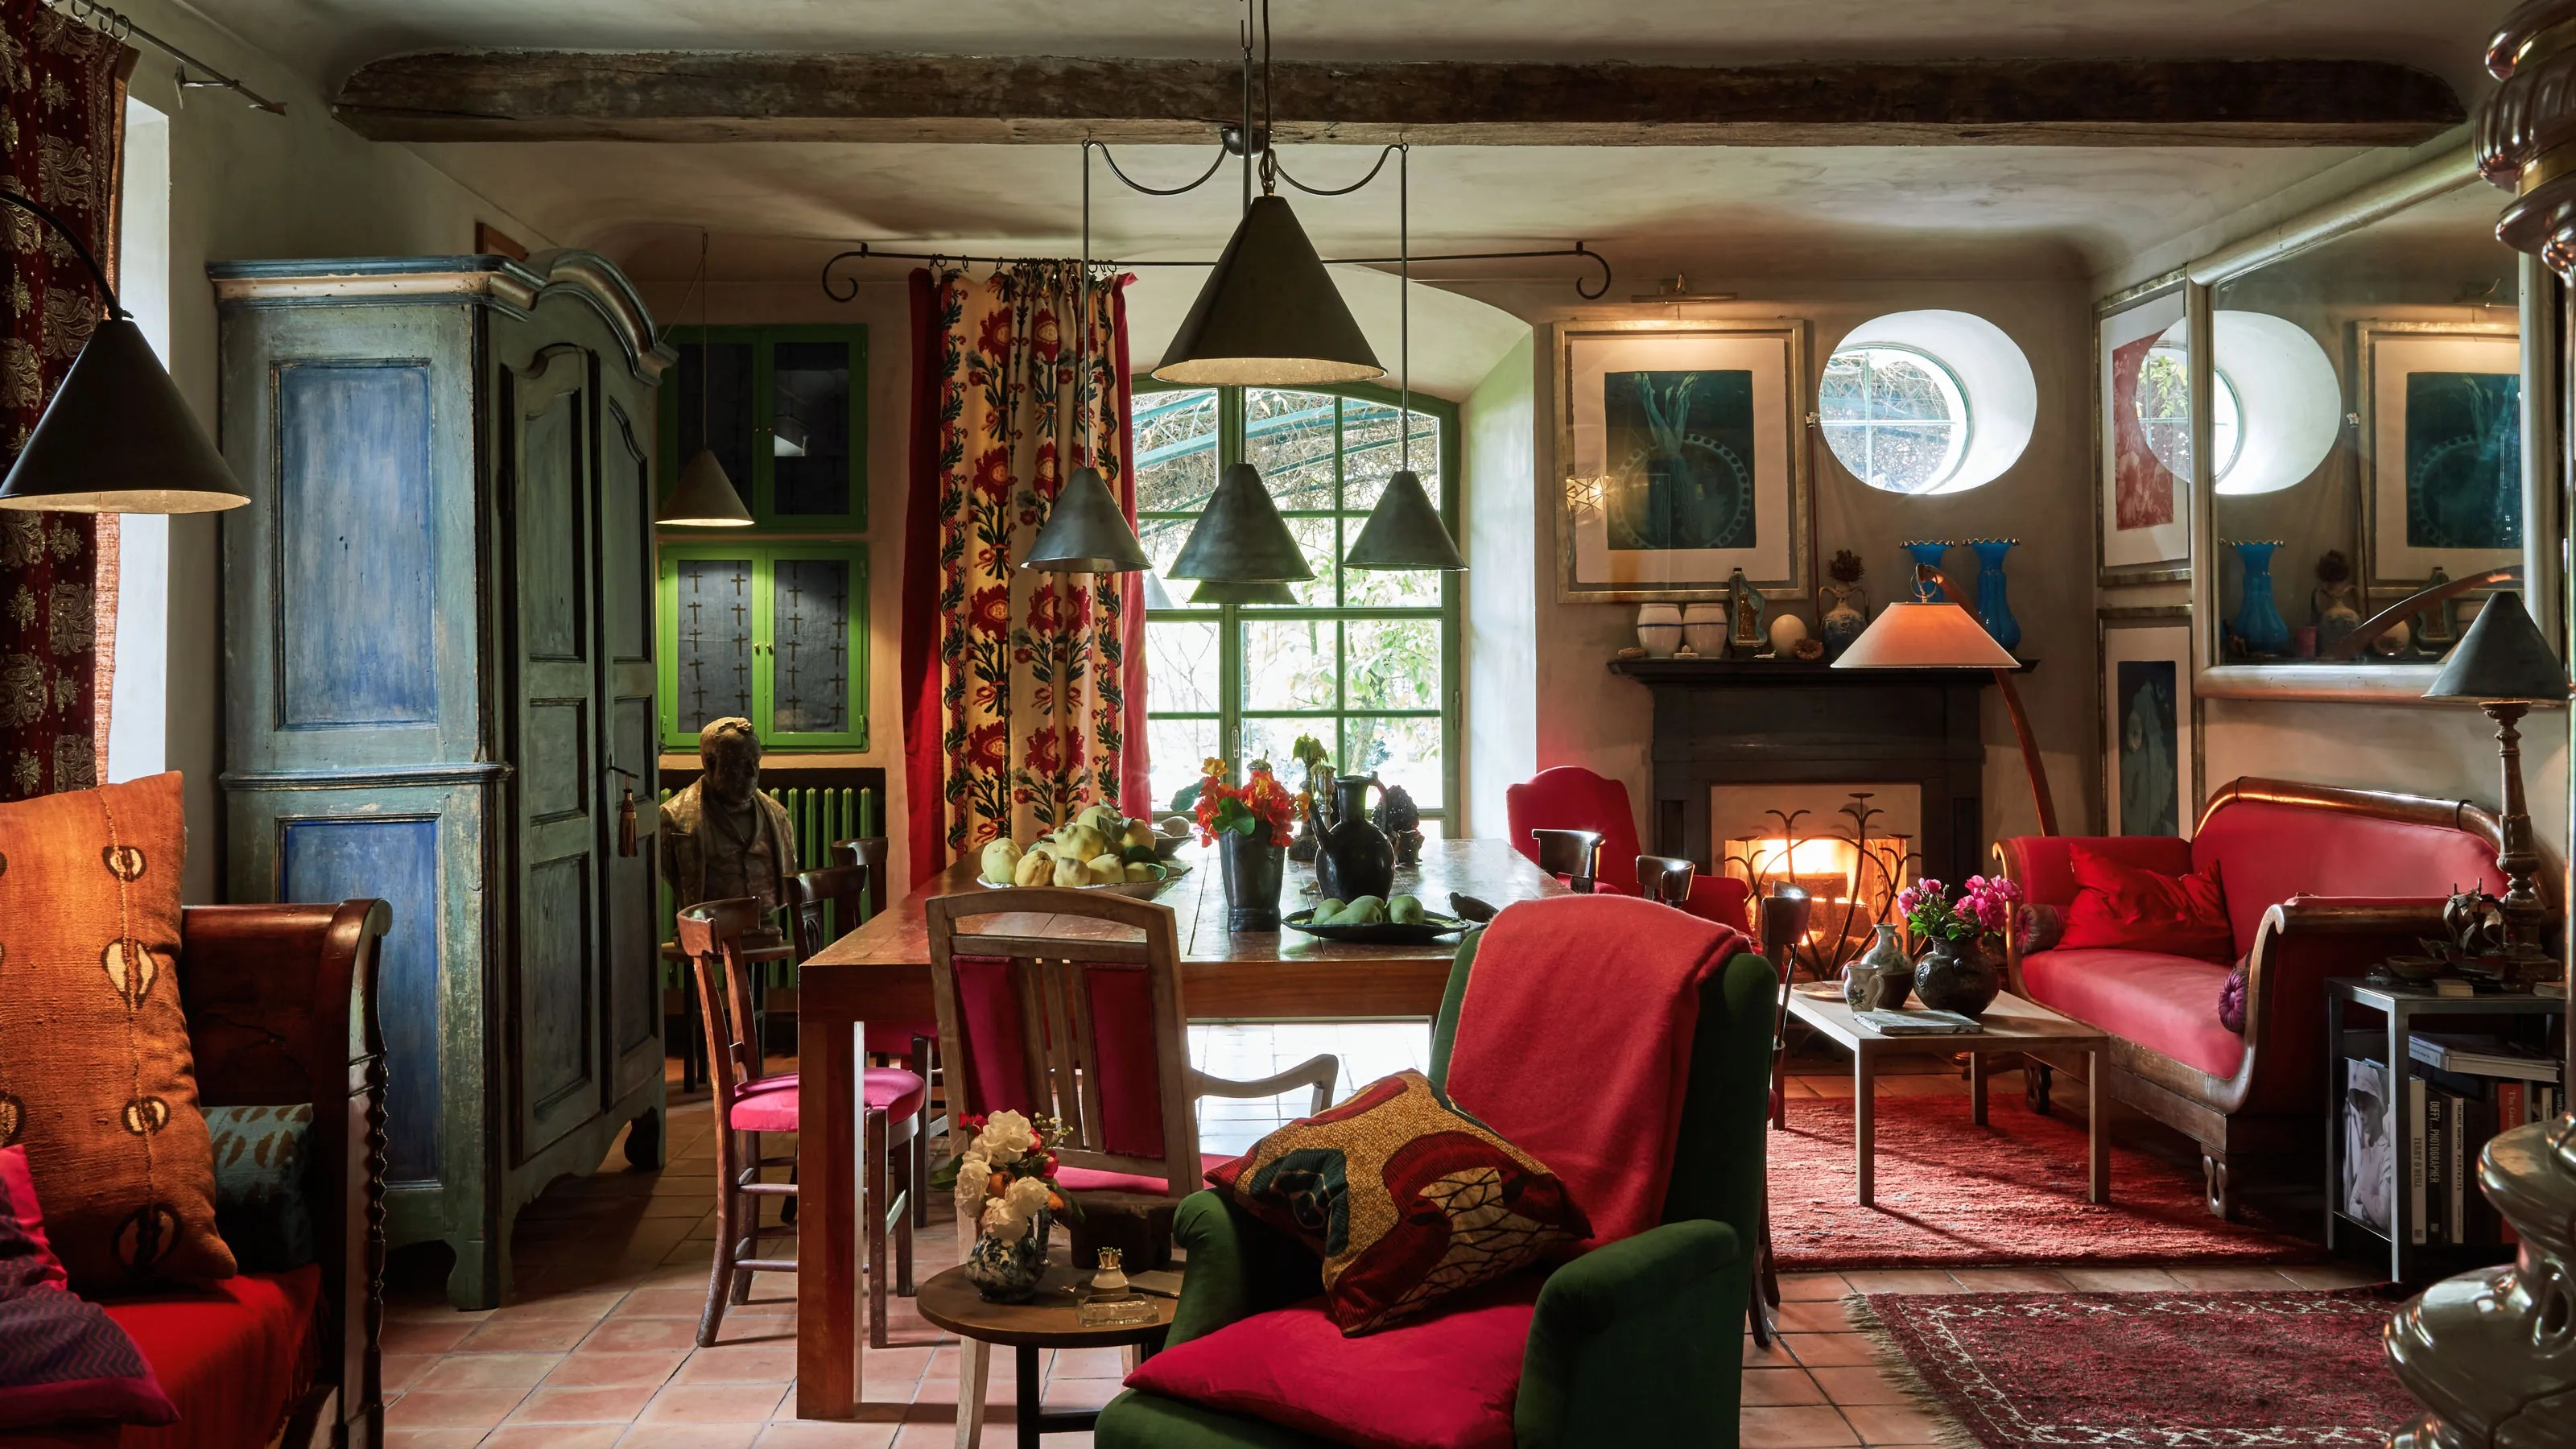 Inside Photographer Oberto Gilis Dreamy Farmhouse in Northwest Italy  Architectural Digest